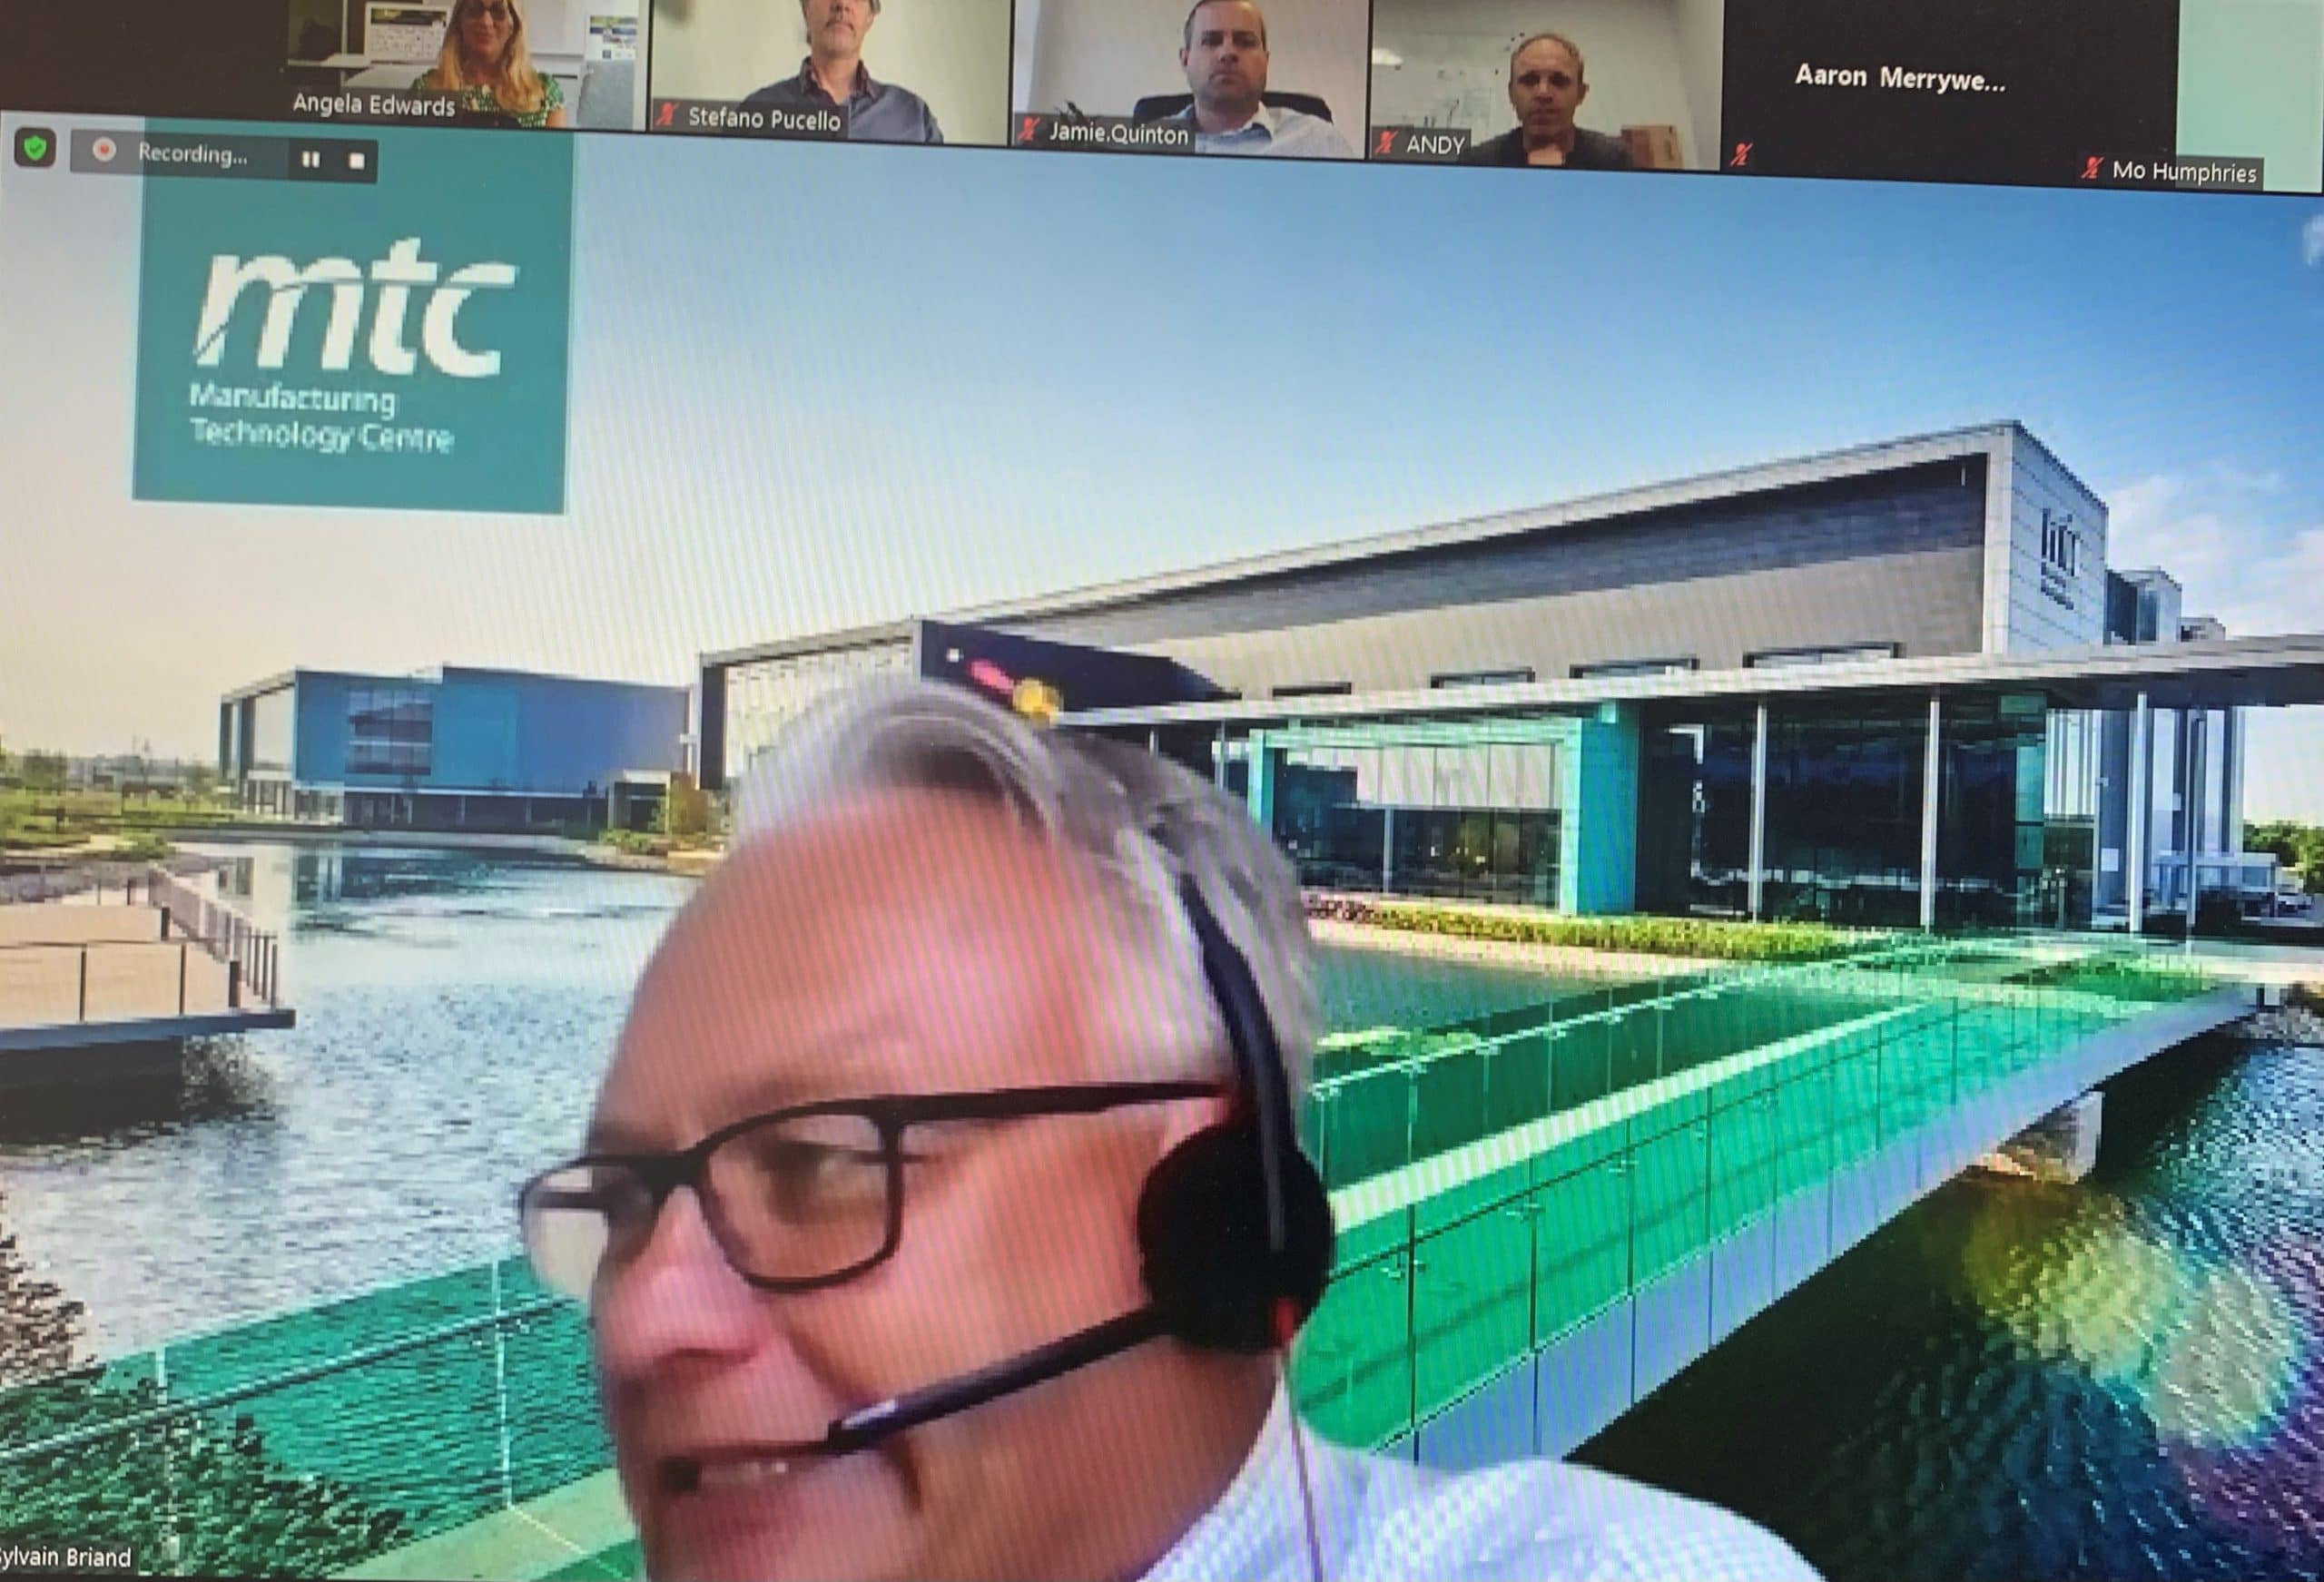 Manufacturing Focus Online Event in Collaboration with the MTC